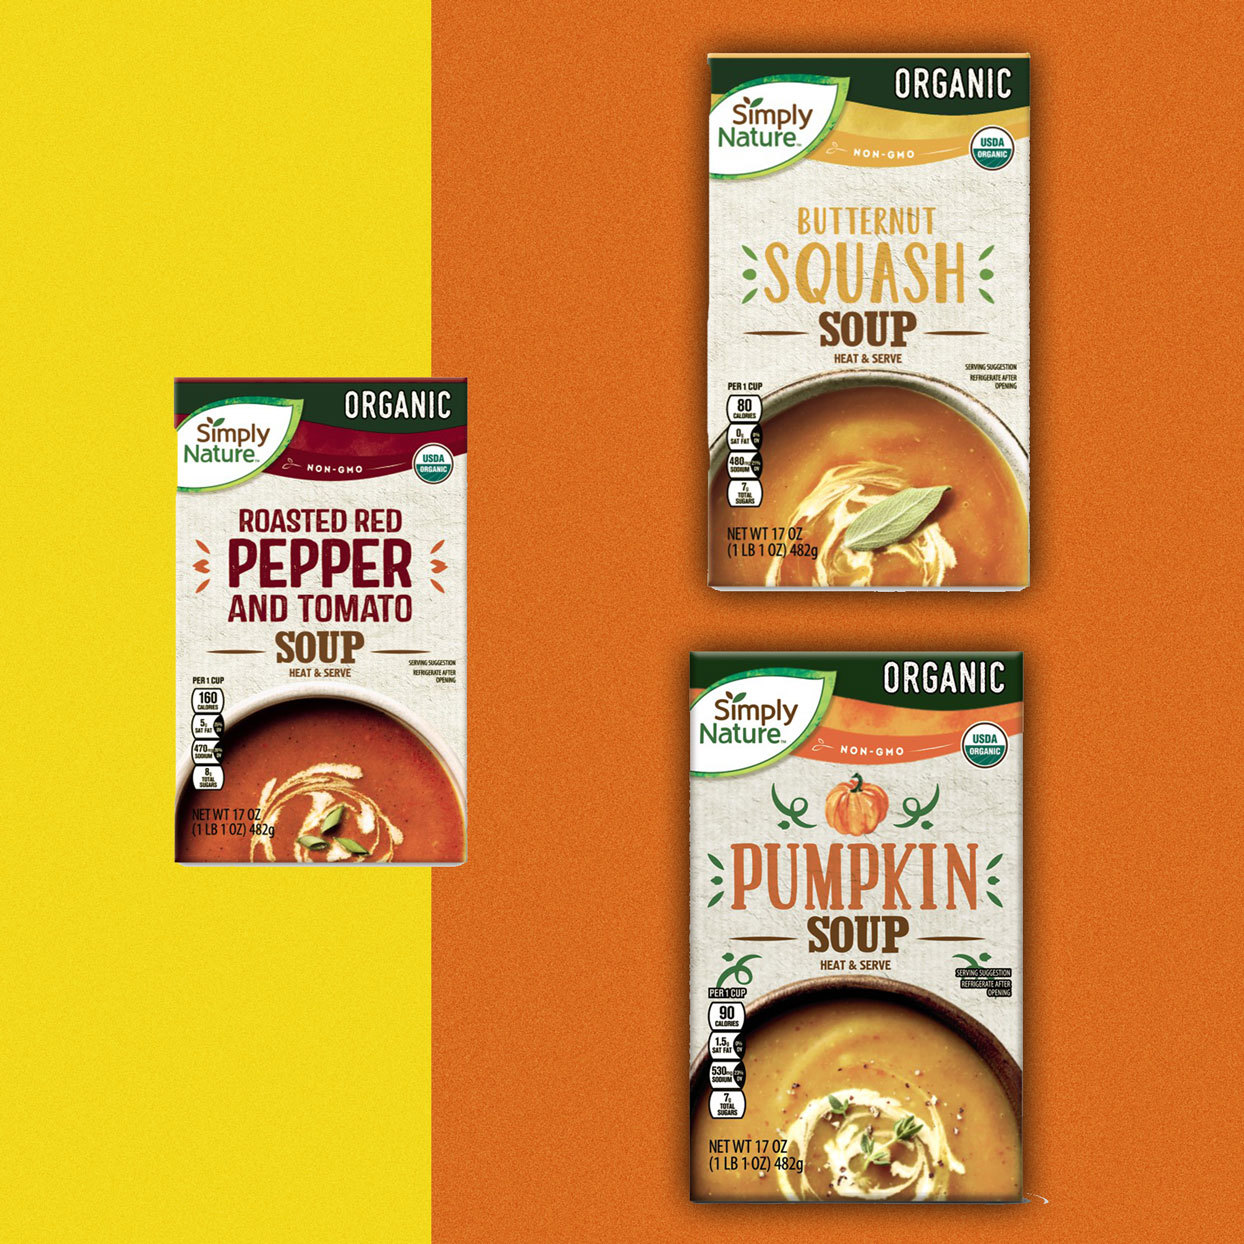 boxed soups - Roasted Red Pepper and Tomato, Butternut Squash, Pumpkin